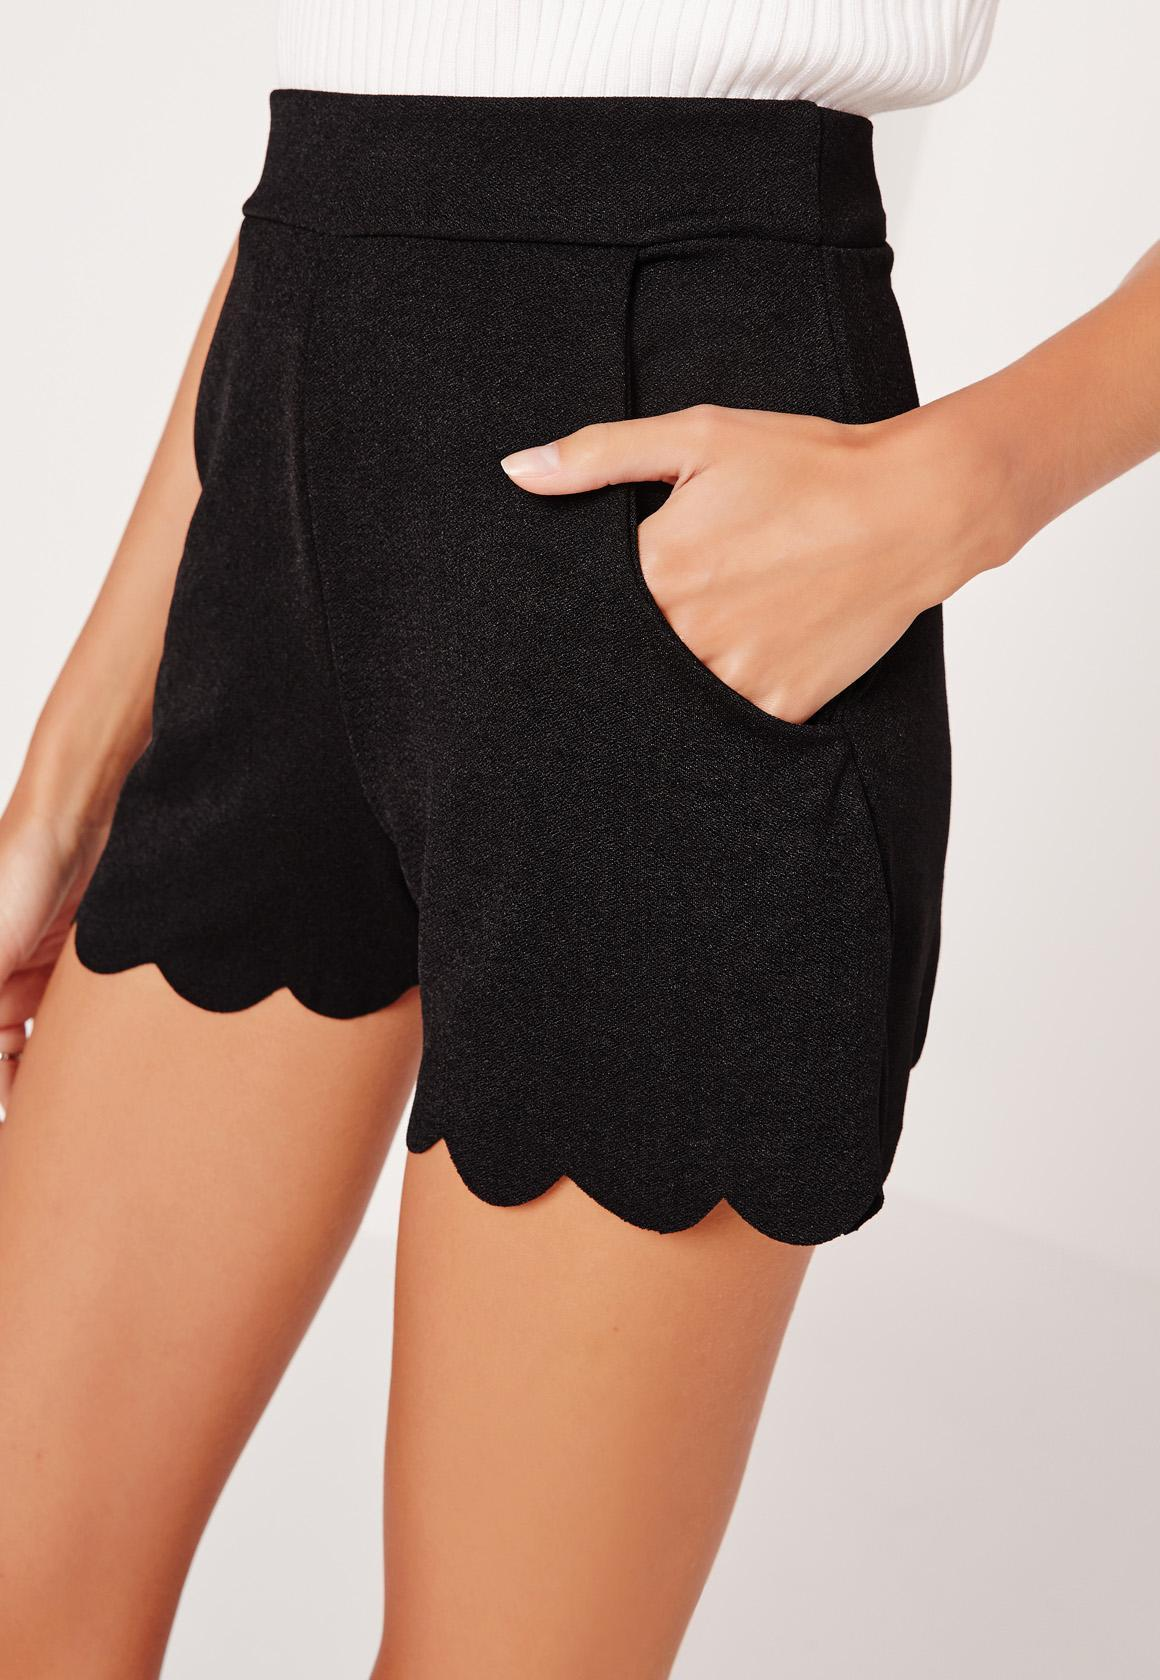 These Chic Scalloped Hem Shorts Is A Must Have To Add To Your Wardrobe. These Shorts Feature A Large Bow Belt And Would Look Look Fabulous With Your Favorite Crop Top Or Tank.